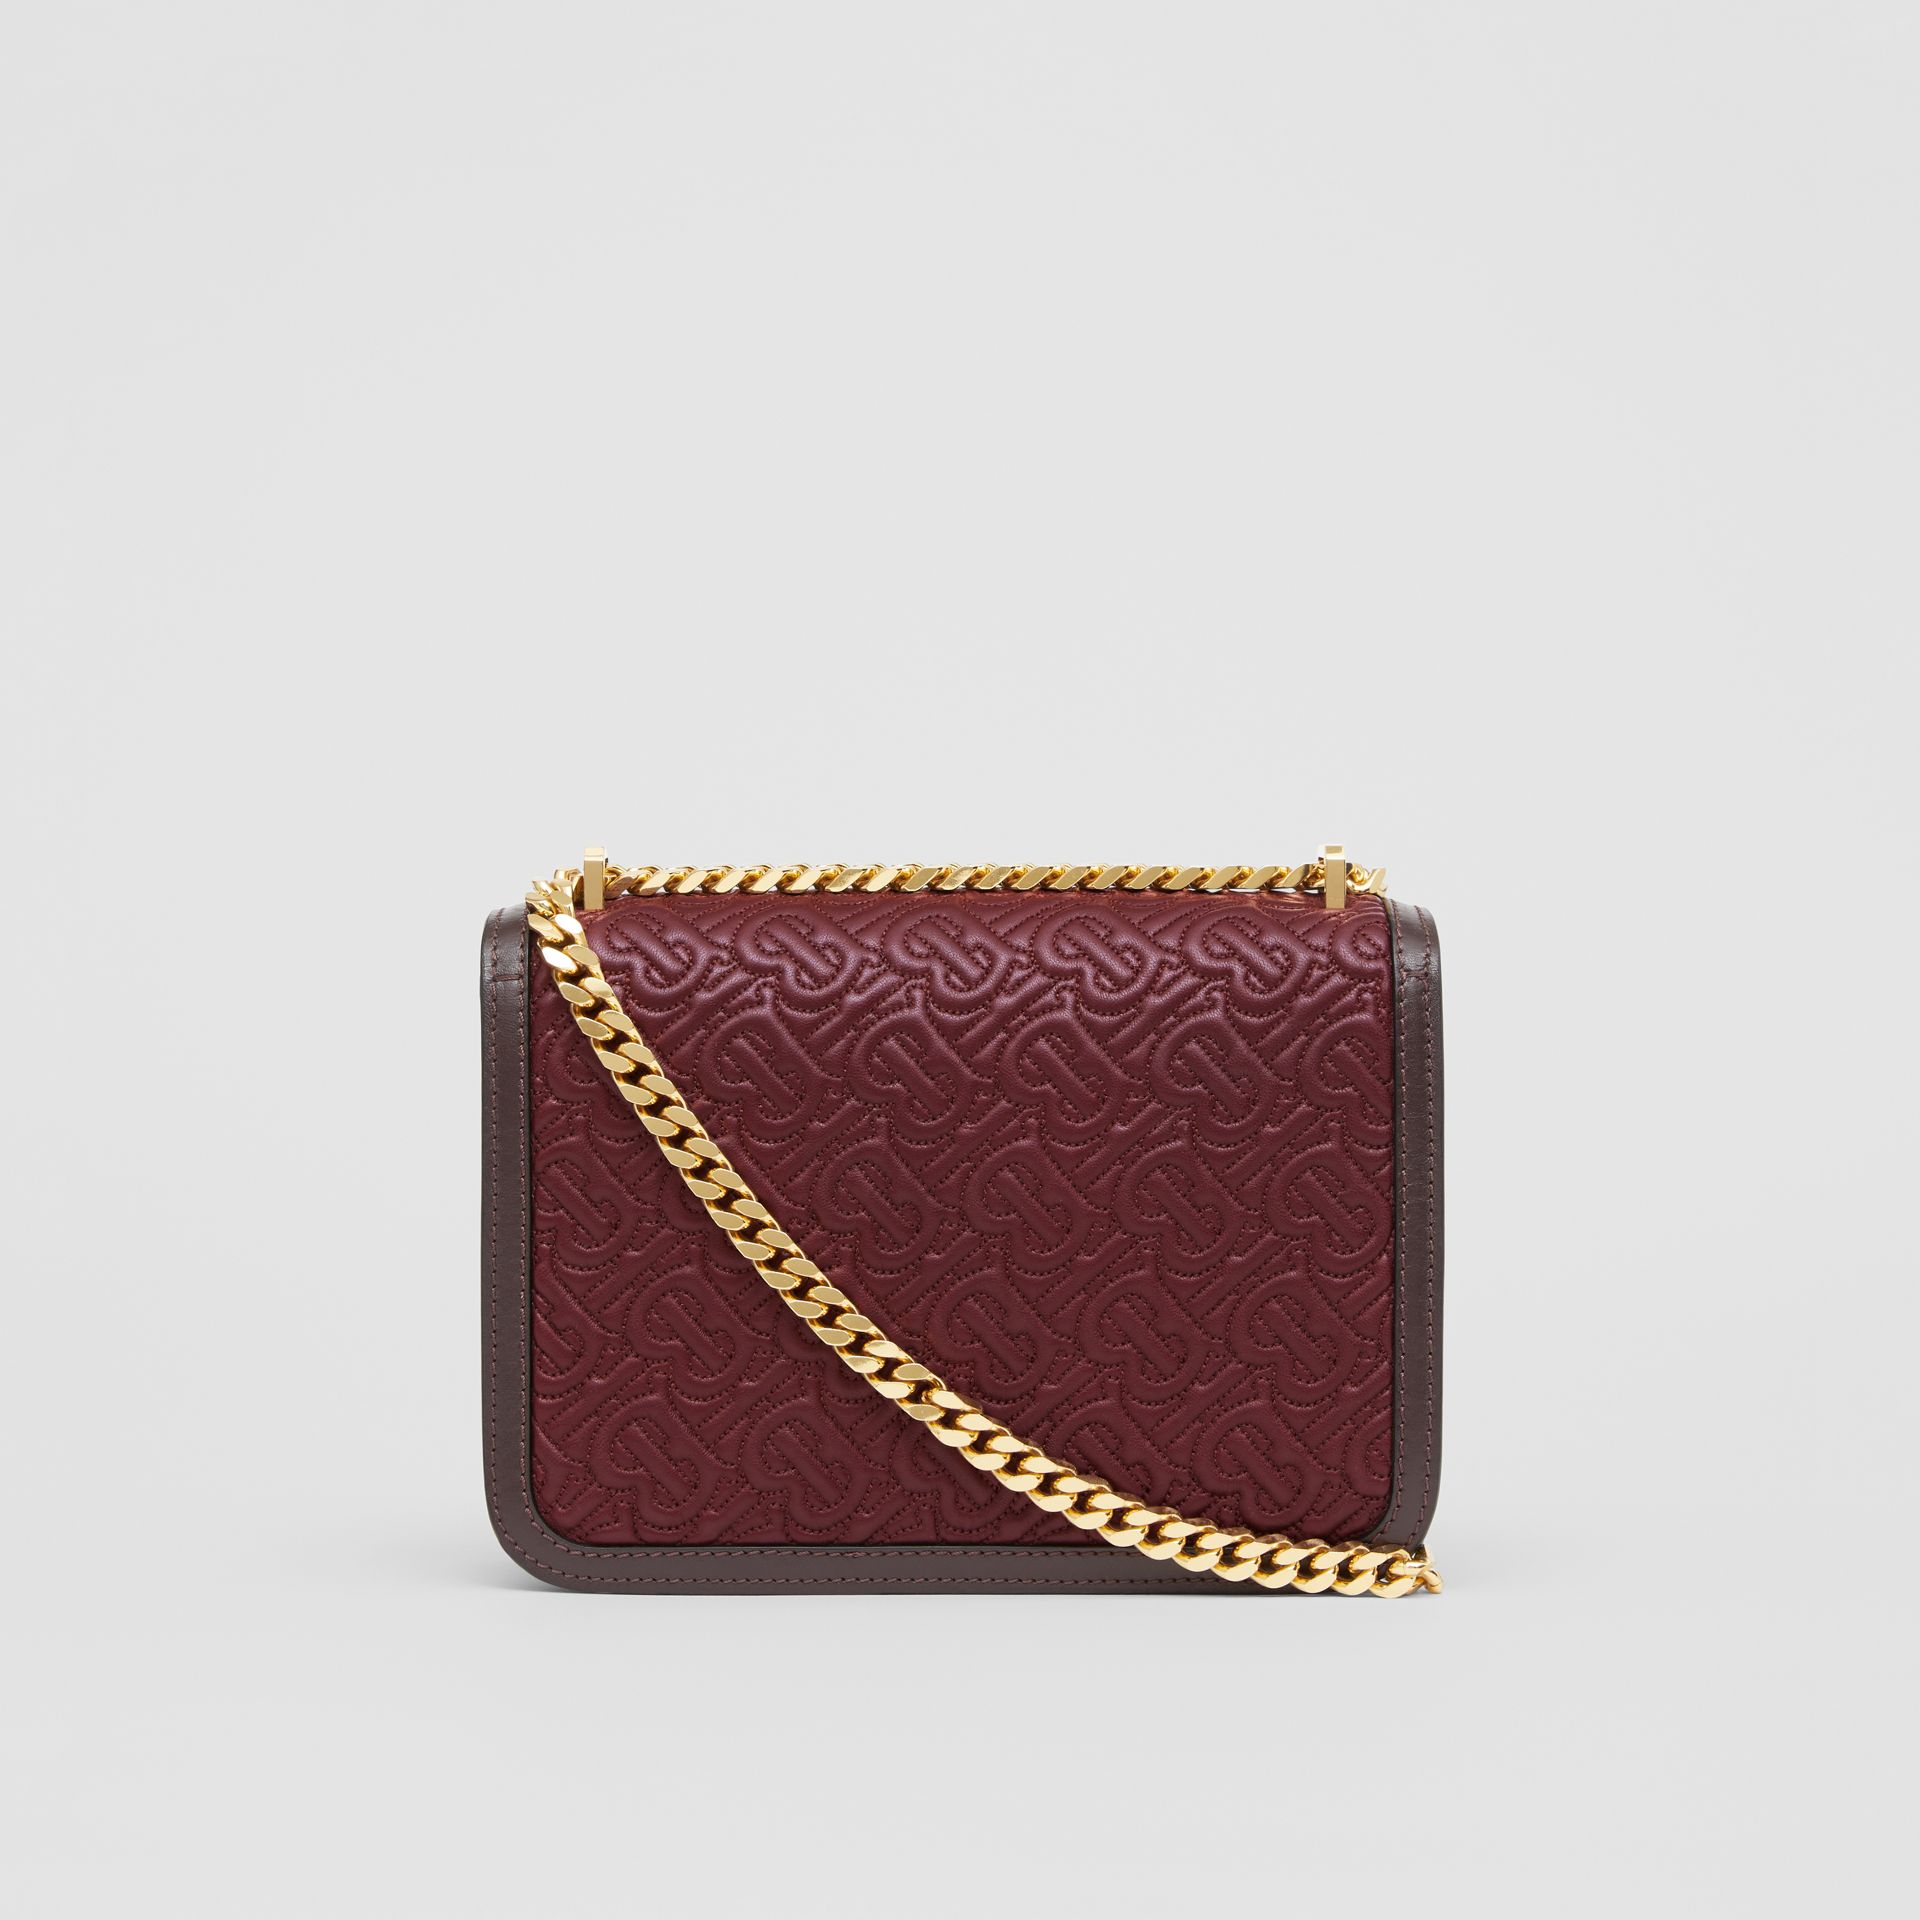 Small Quilted Monogram Lambskin TB Bag in Dark Burgundy - Women | Burberry - gallery image 7